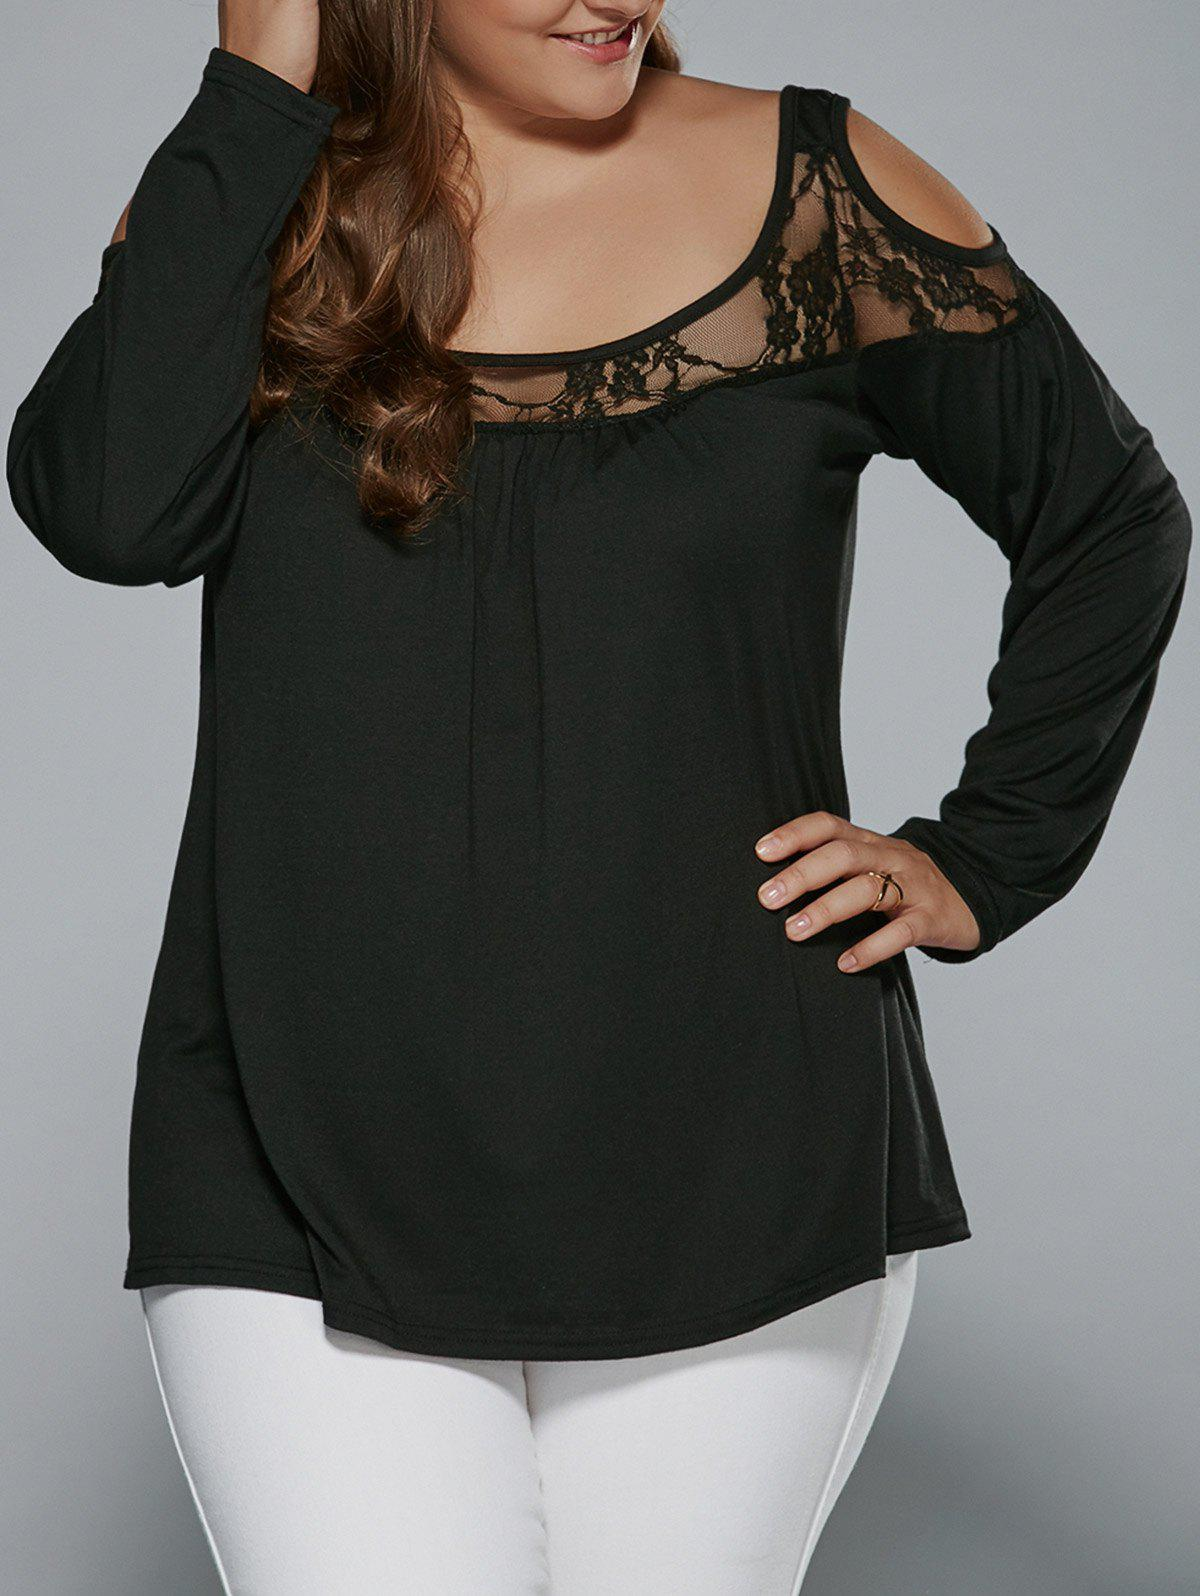 Long Sleeve Lace Patchwork Cold Shoulder T-Shirt - BLACK XL